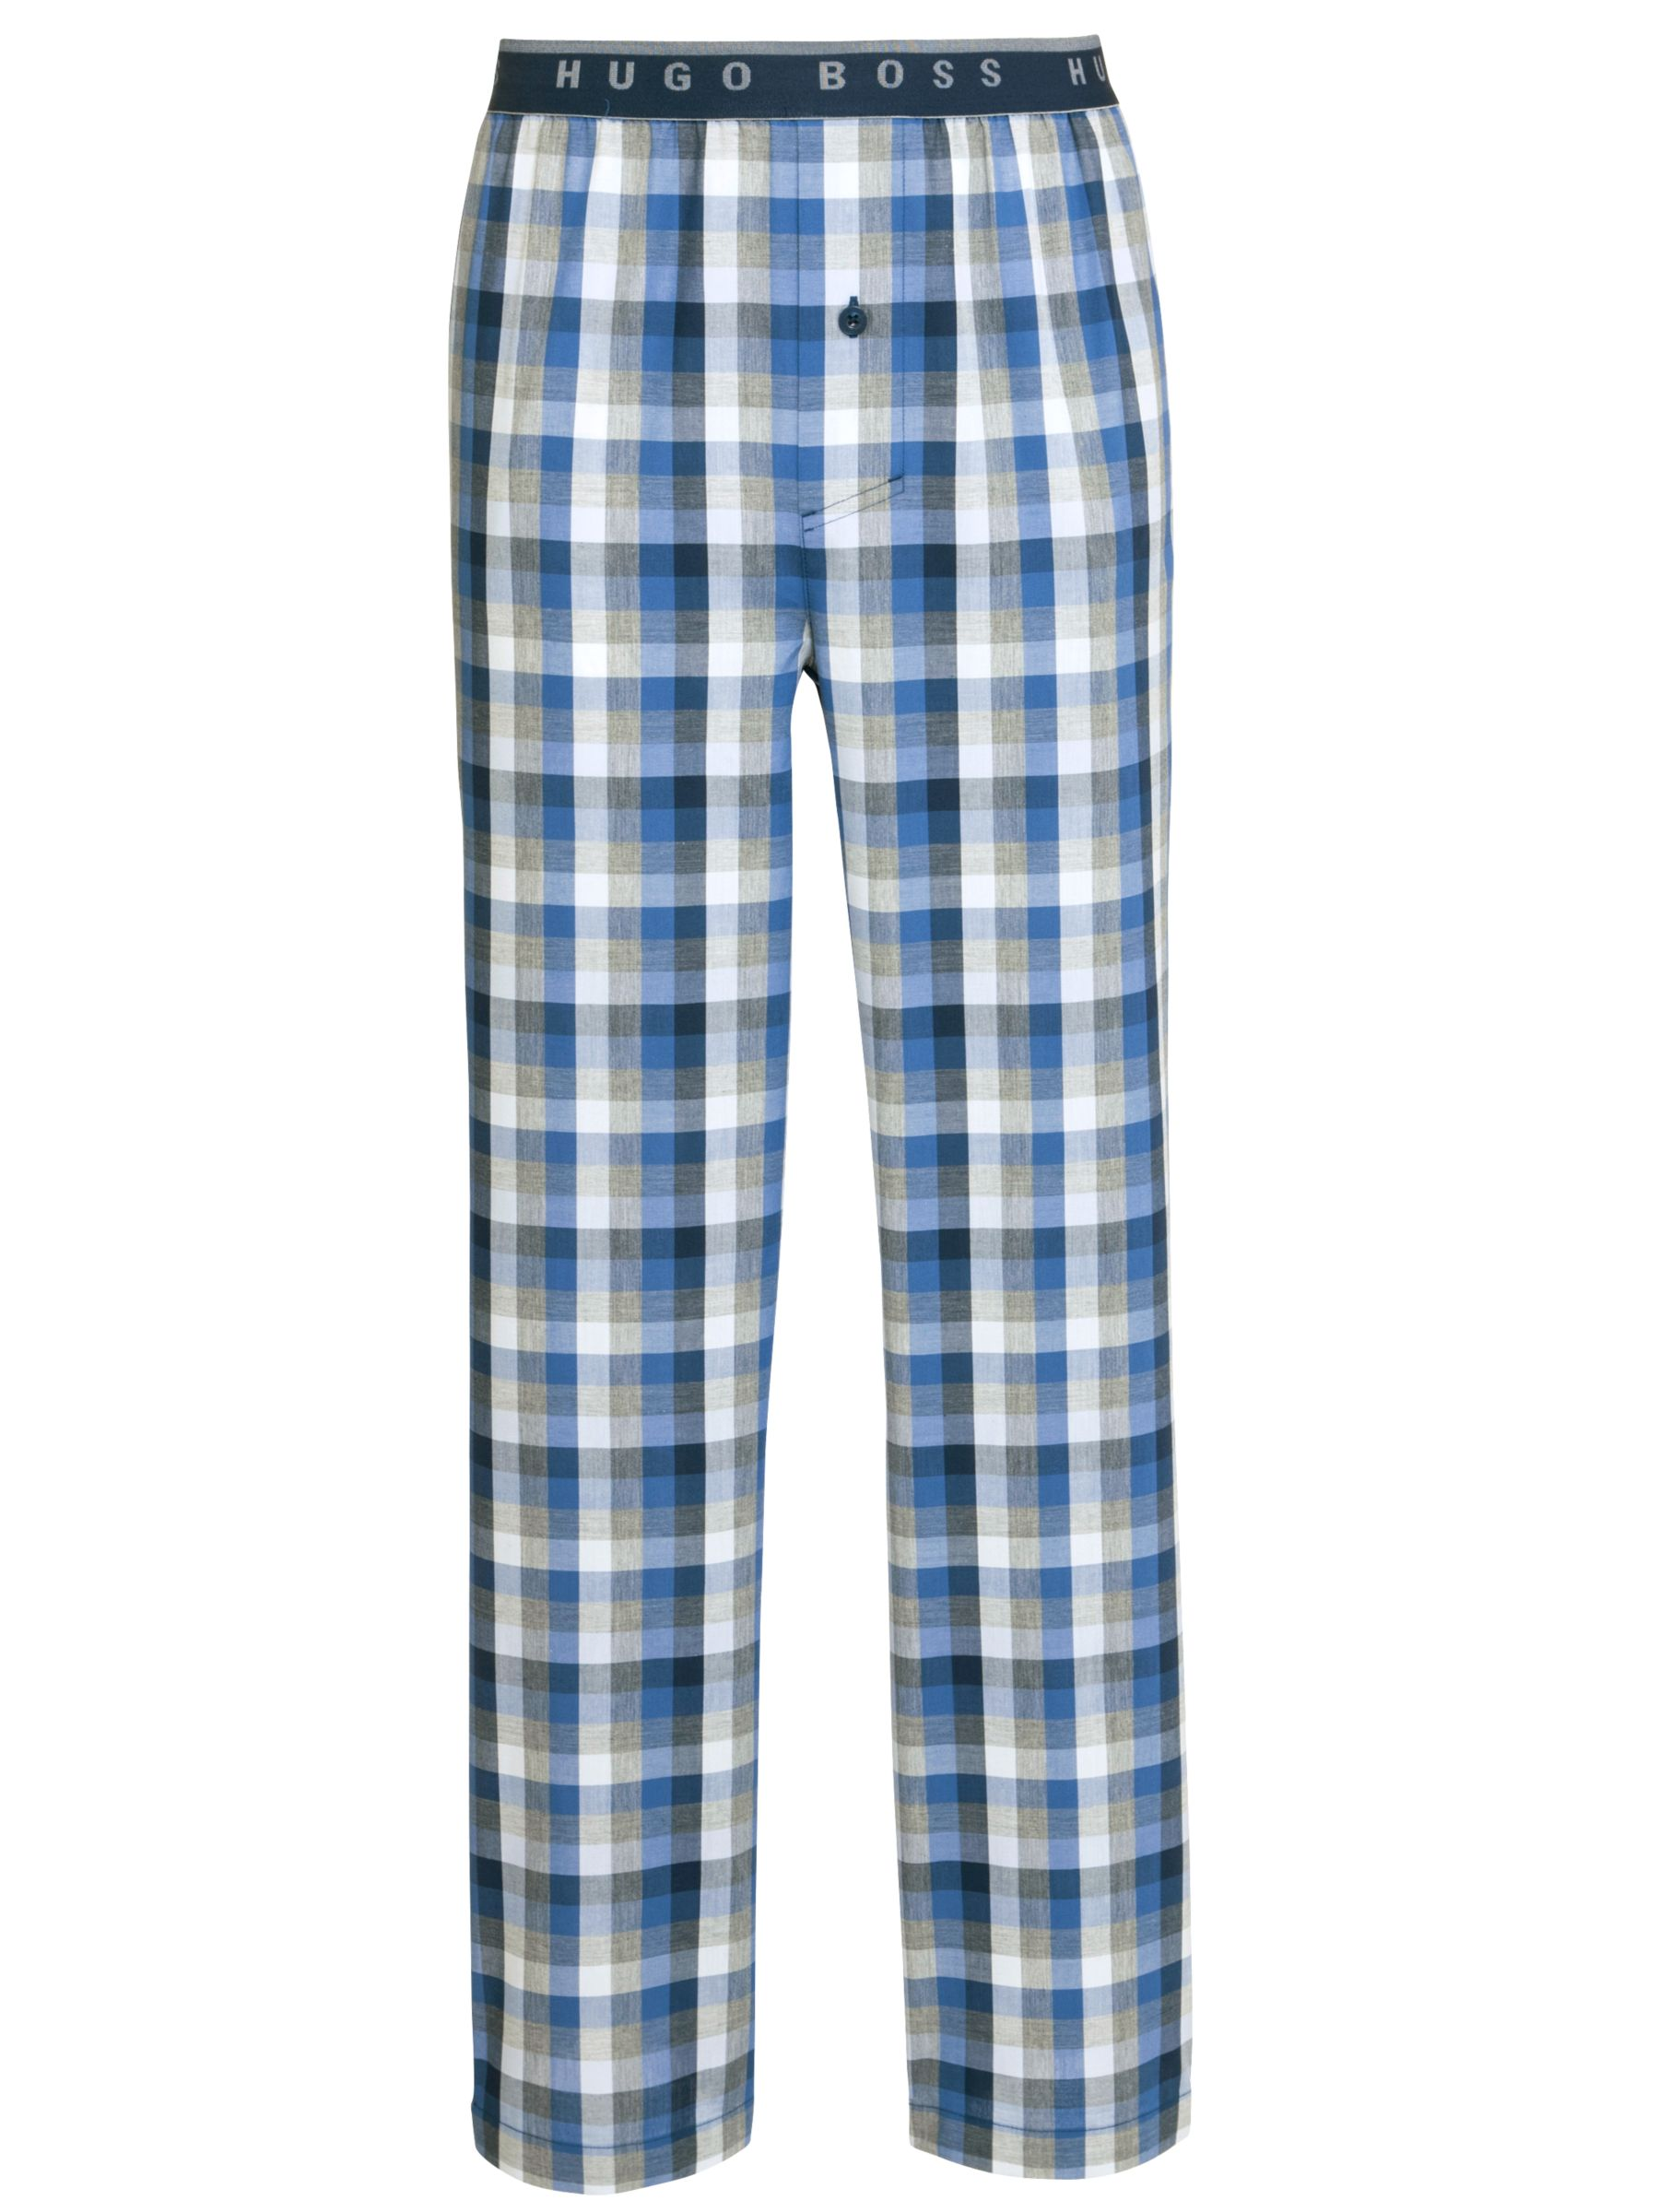 Hugo Boss Check Lounge Pants